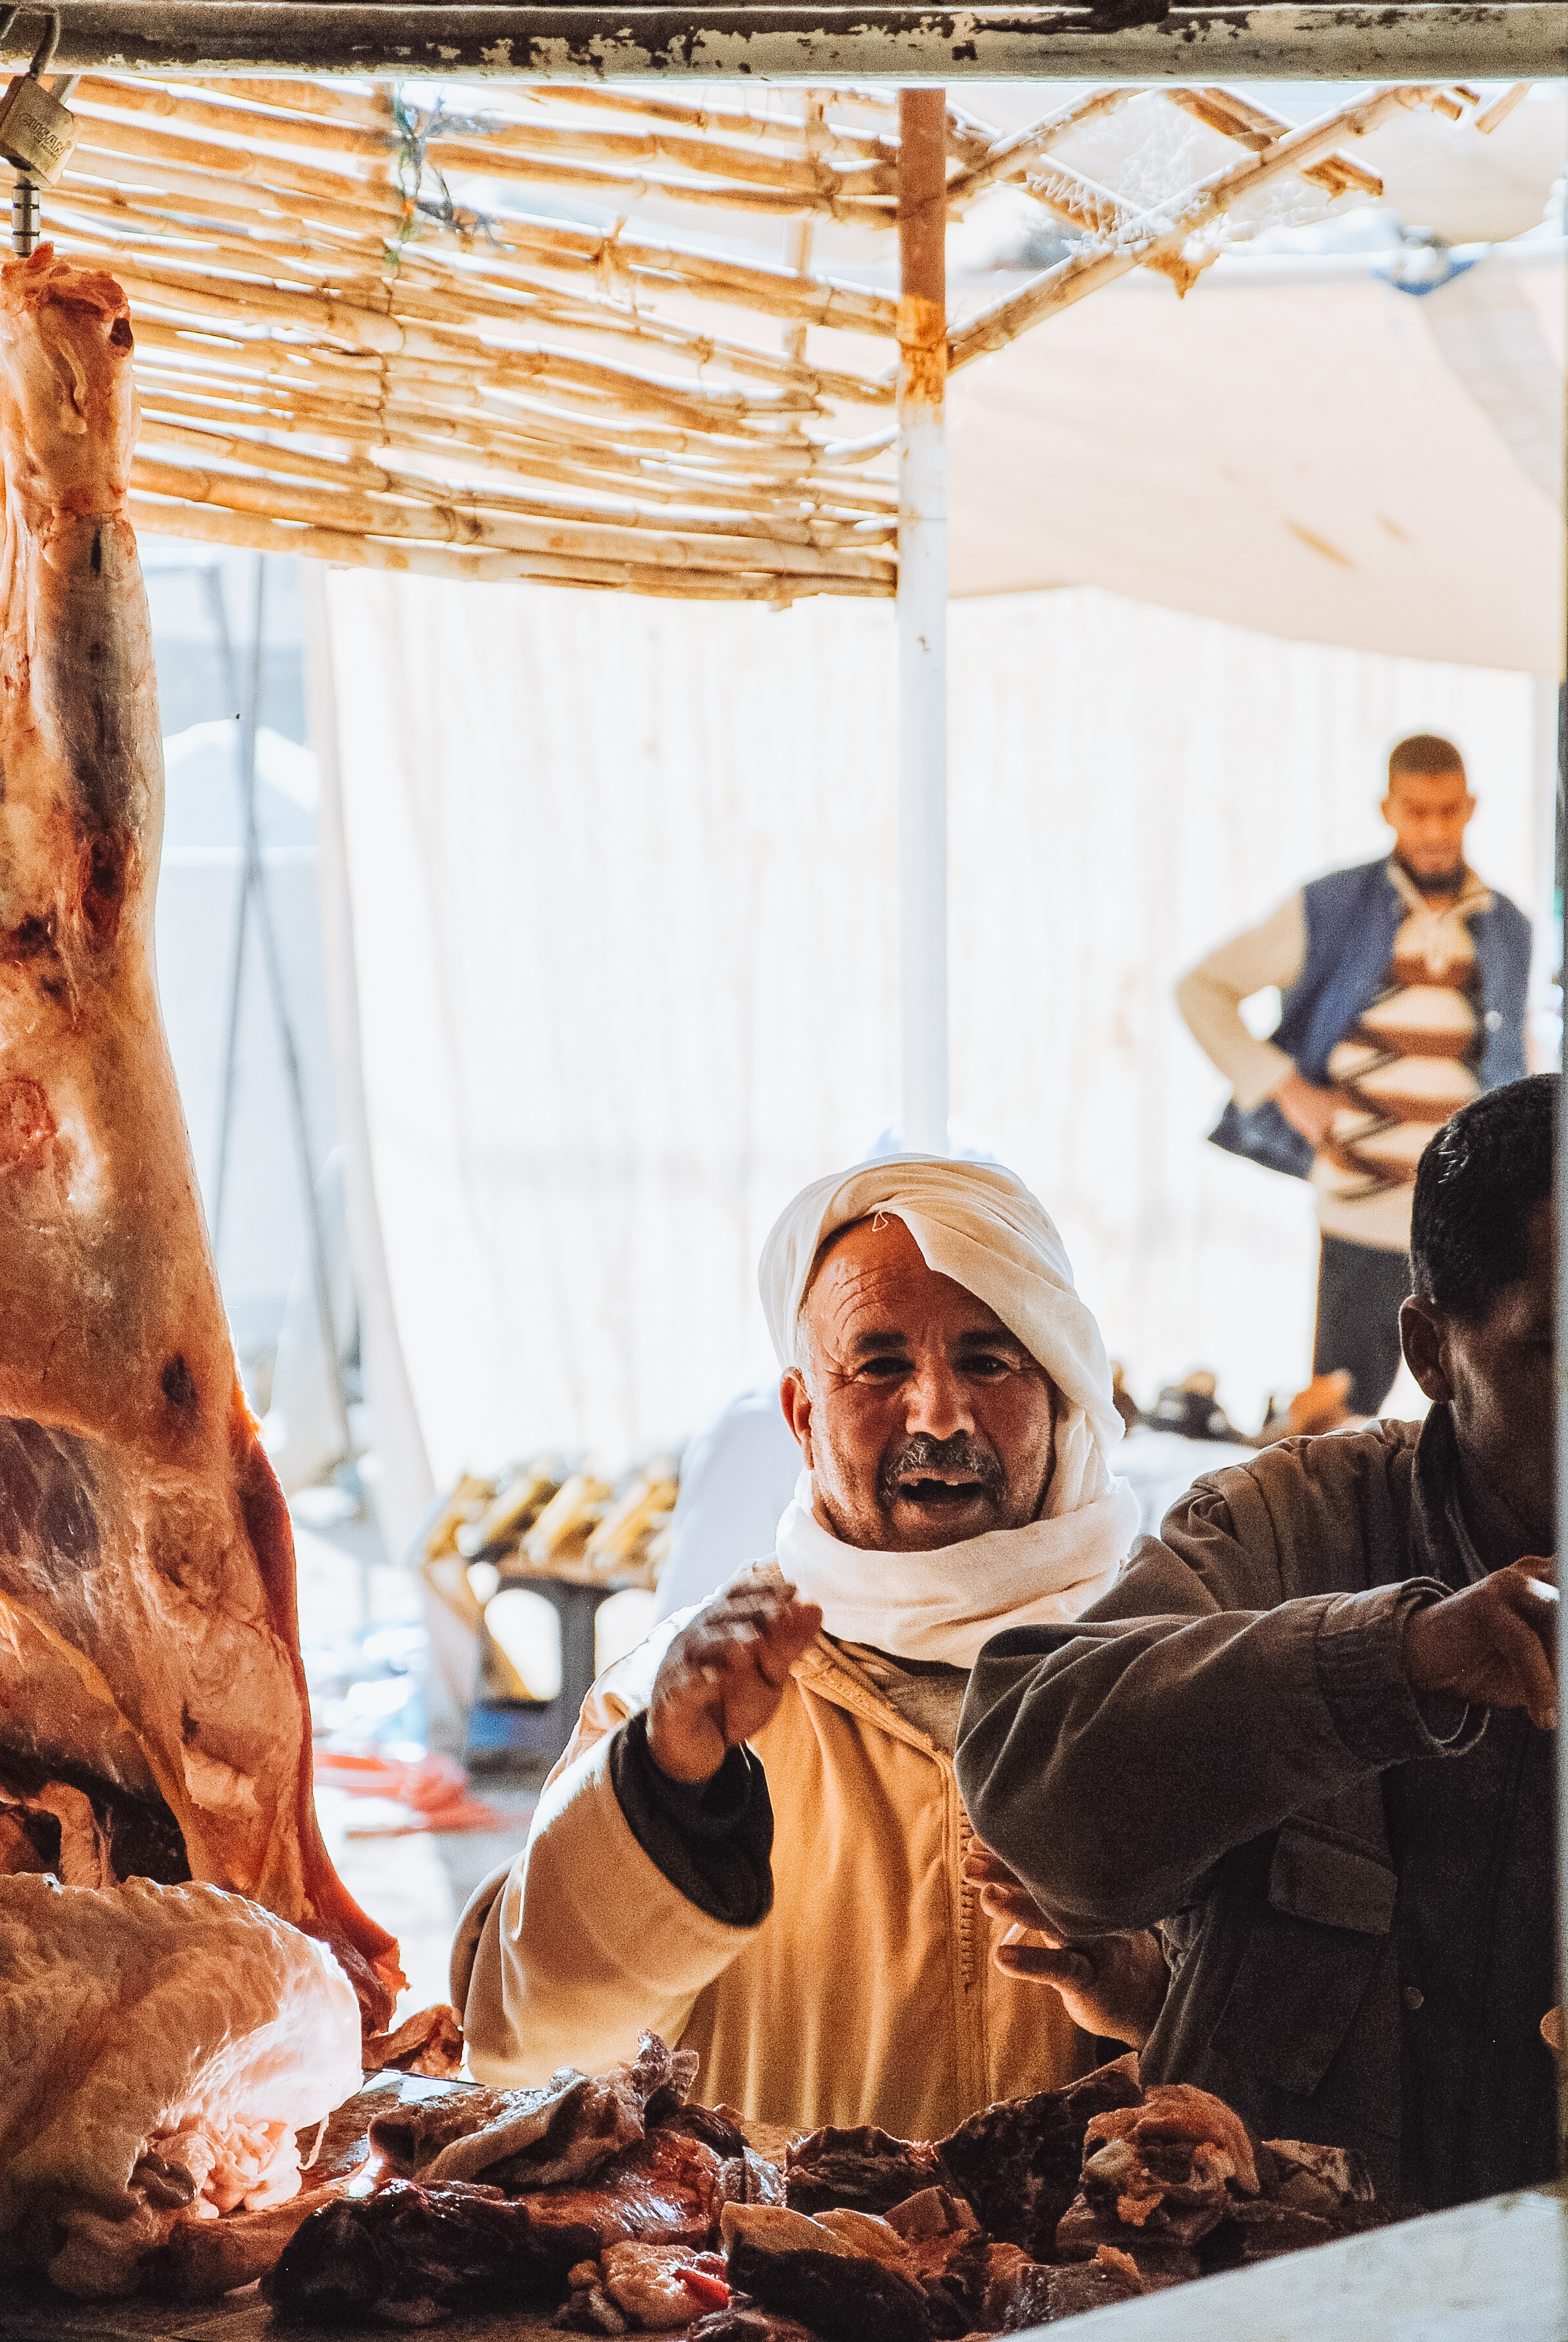 Meat hanging in shade of a shop